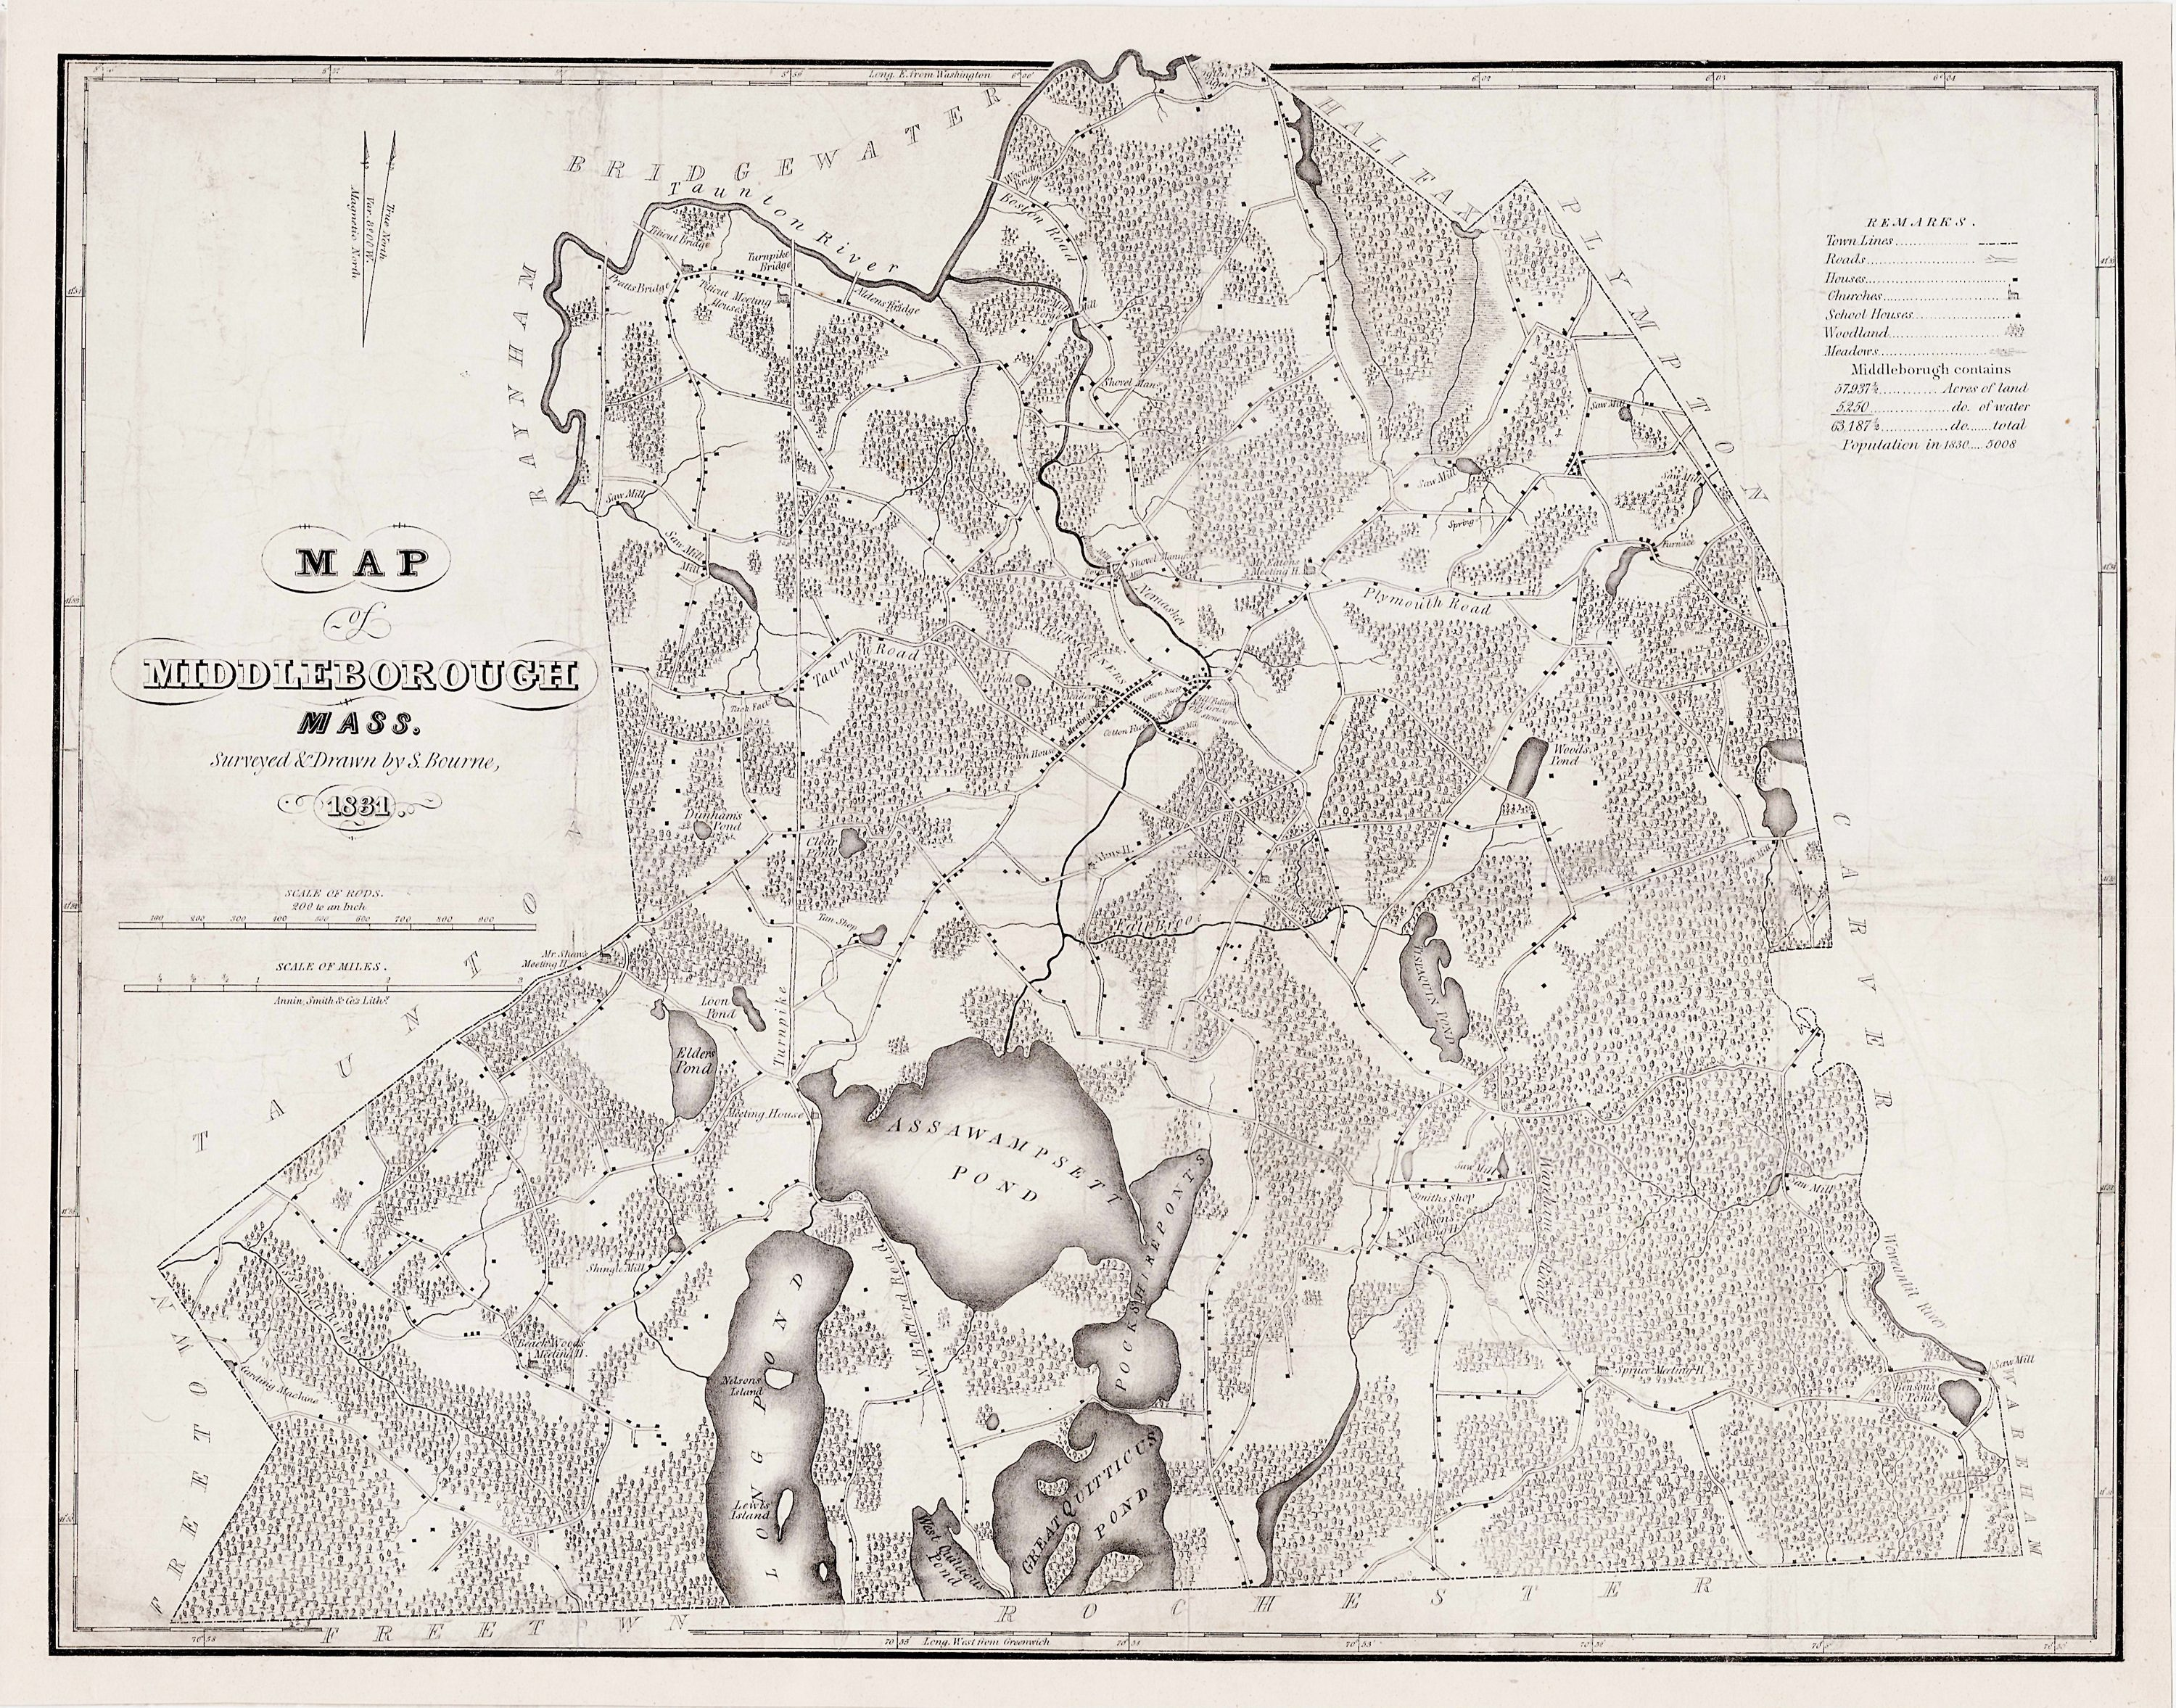 The first printed map of Middleborough, Machusetts - Rare ... on